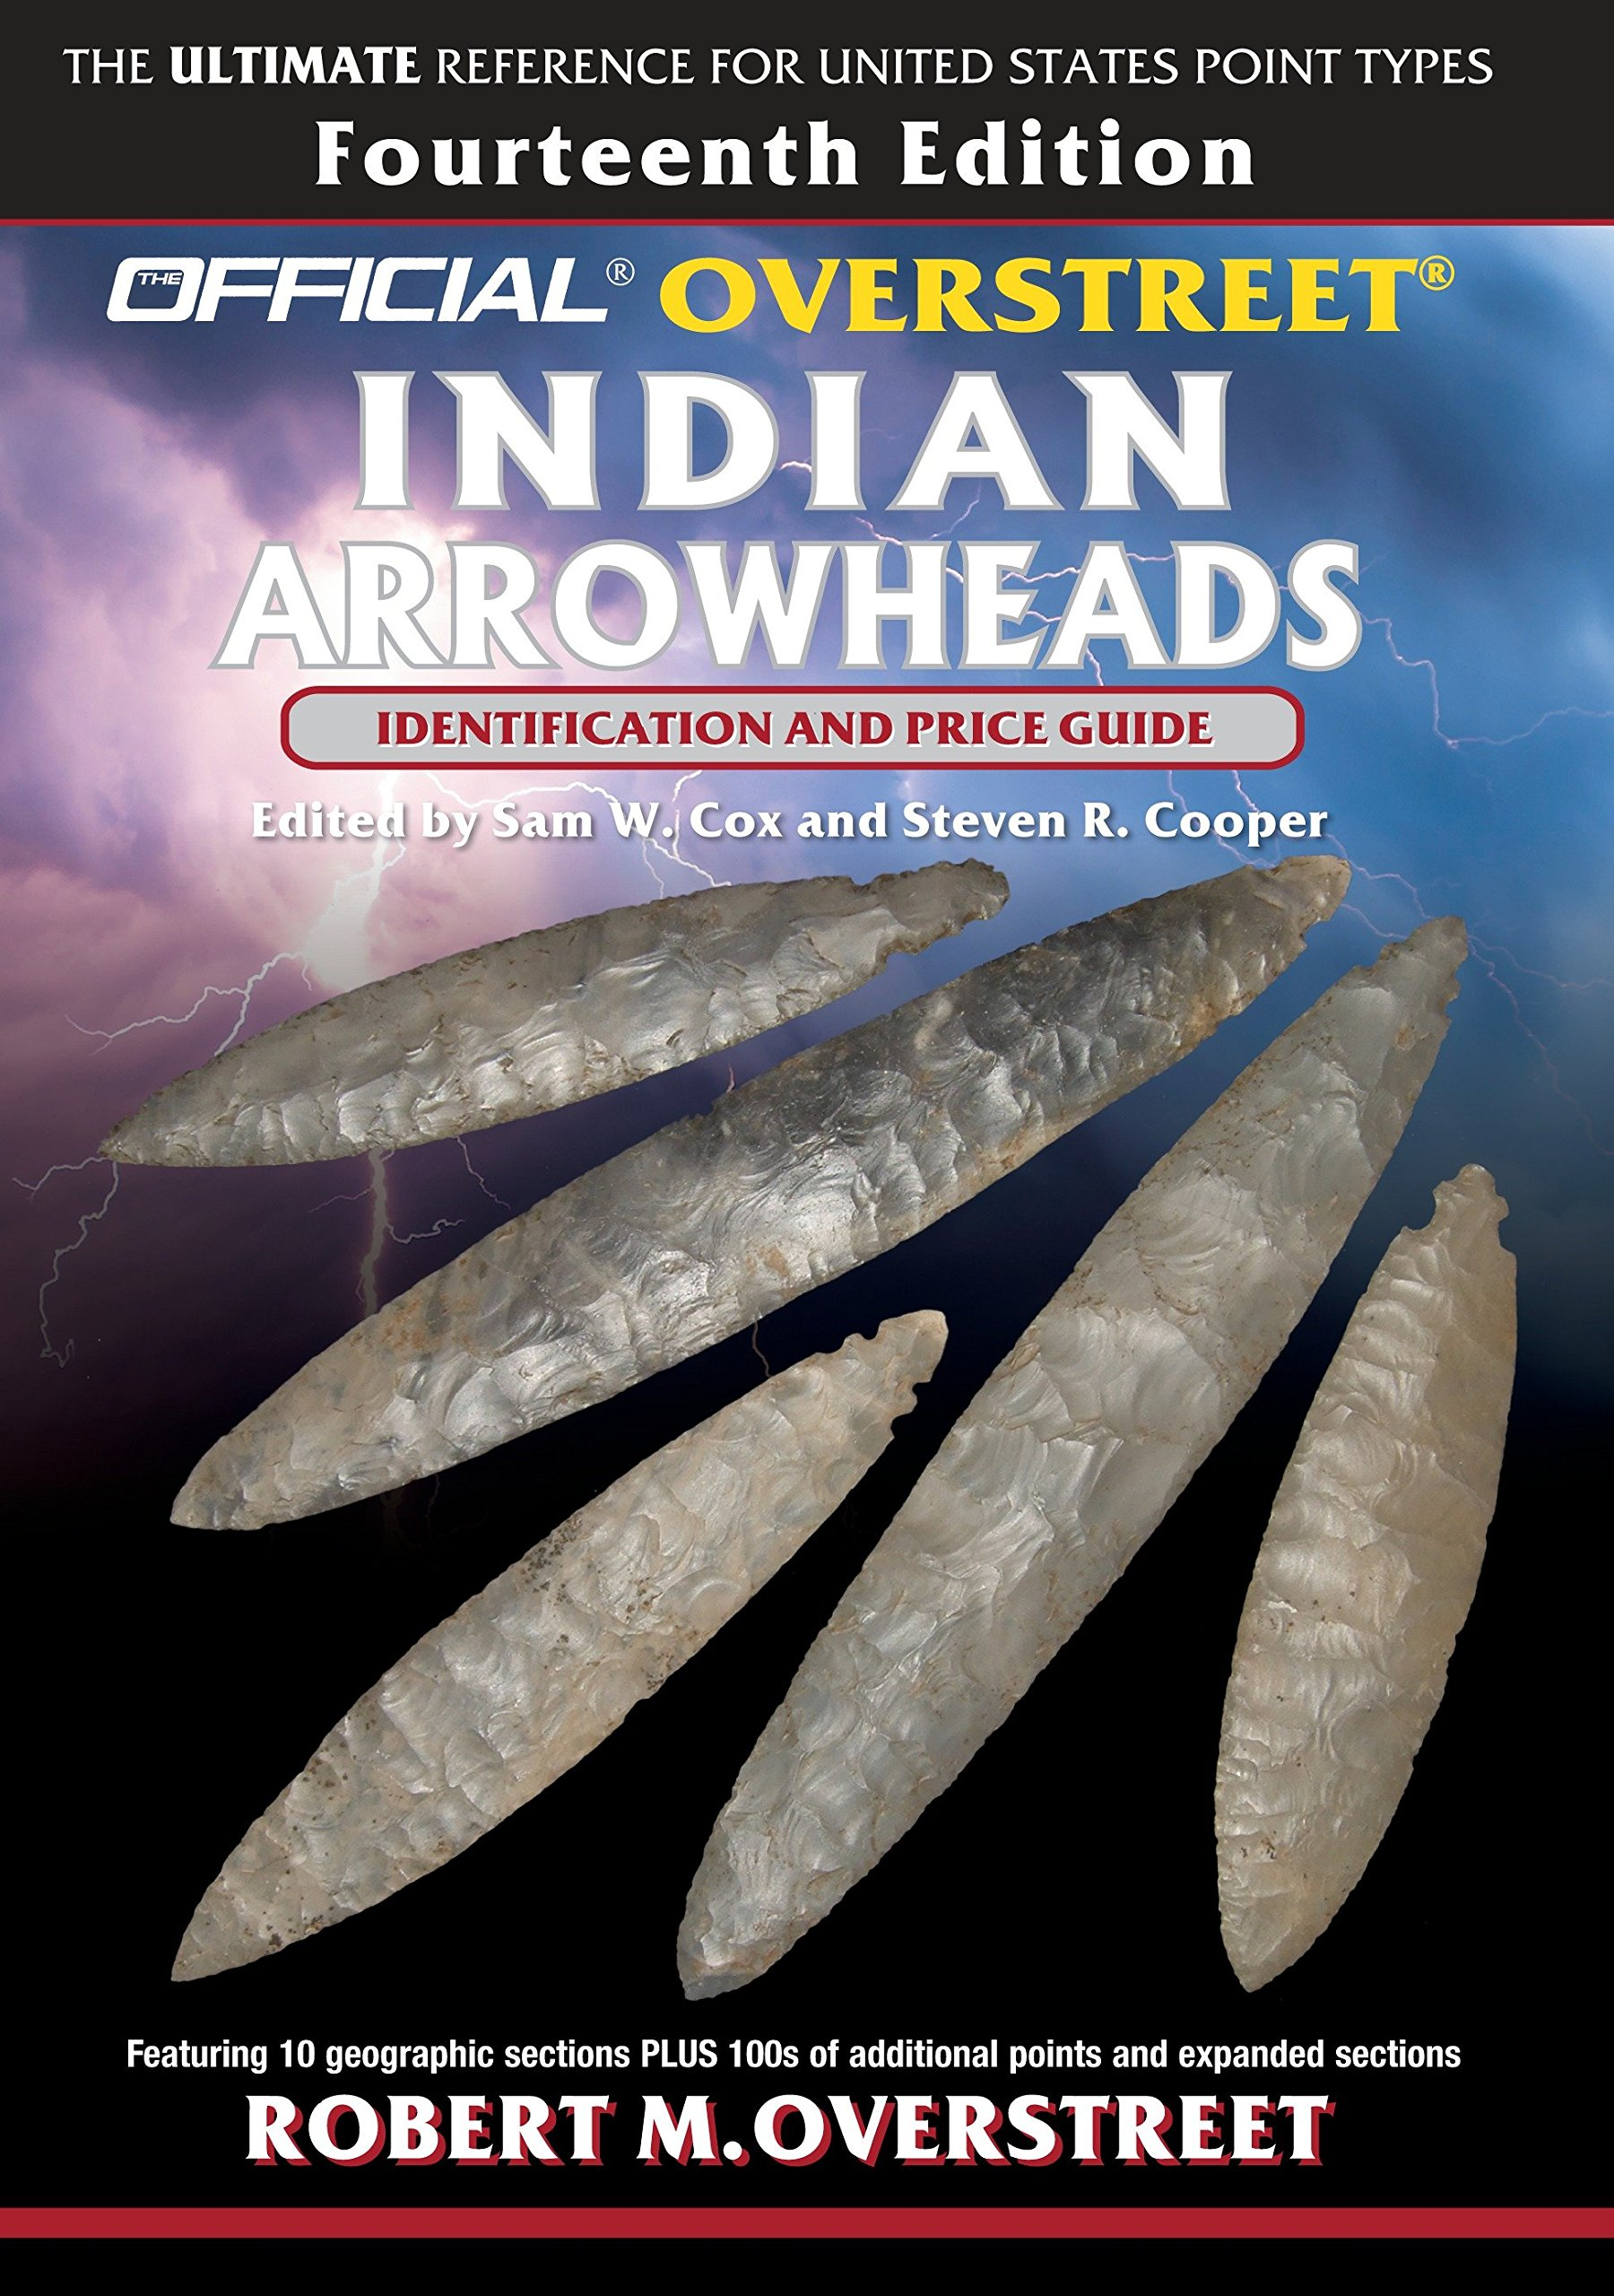 The Official Overstreet Identification and Price Guide to Indian  Arrowheads, 14th Edition (Official Overstreet Indian Arrowhead  Identification and Price ...